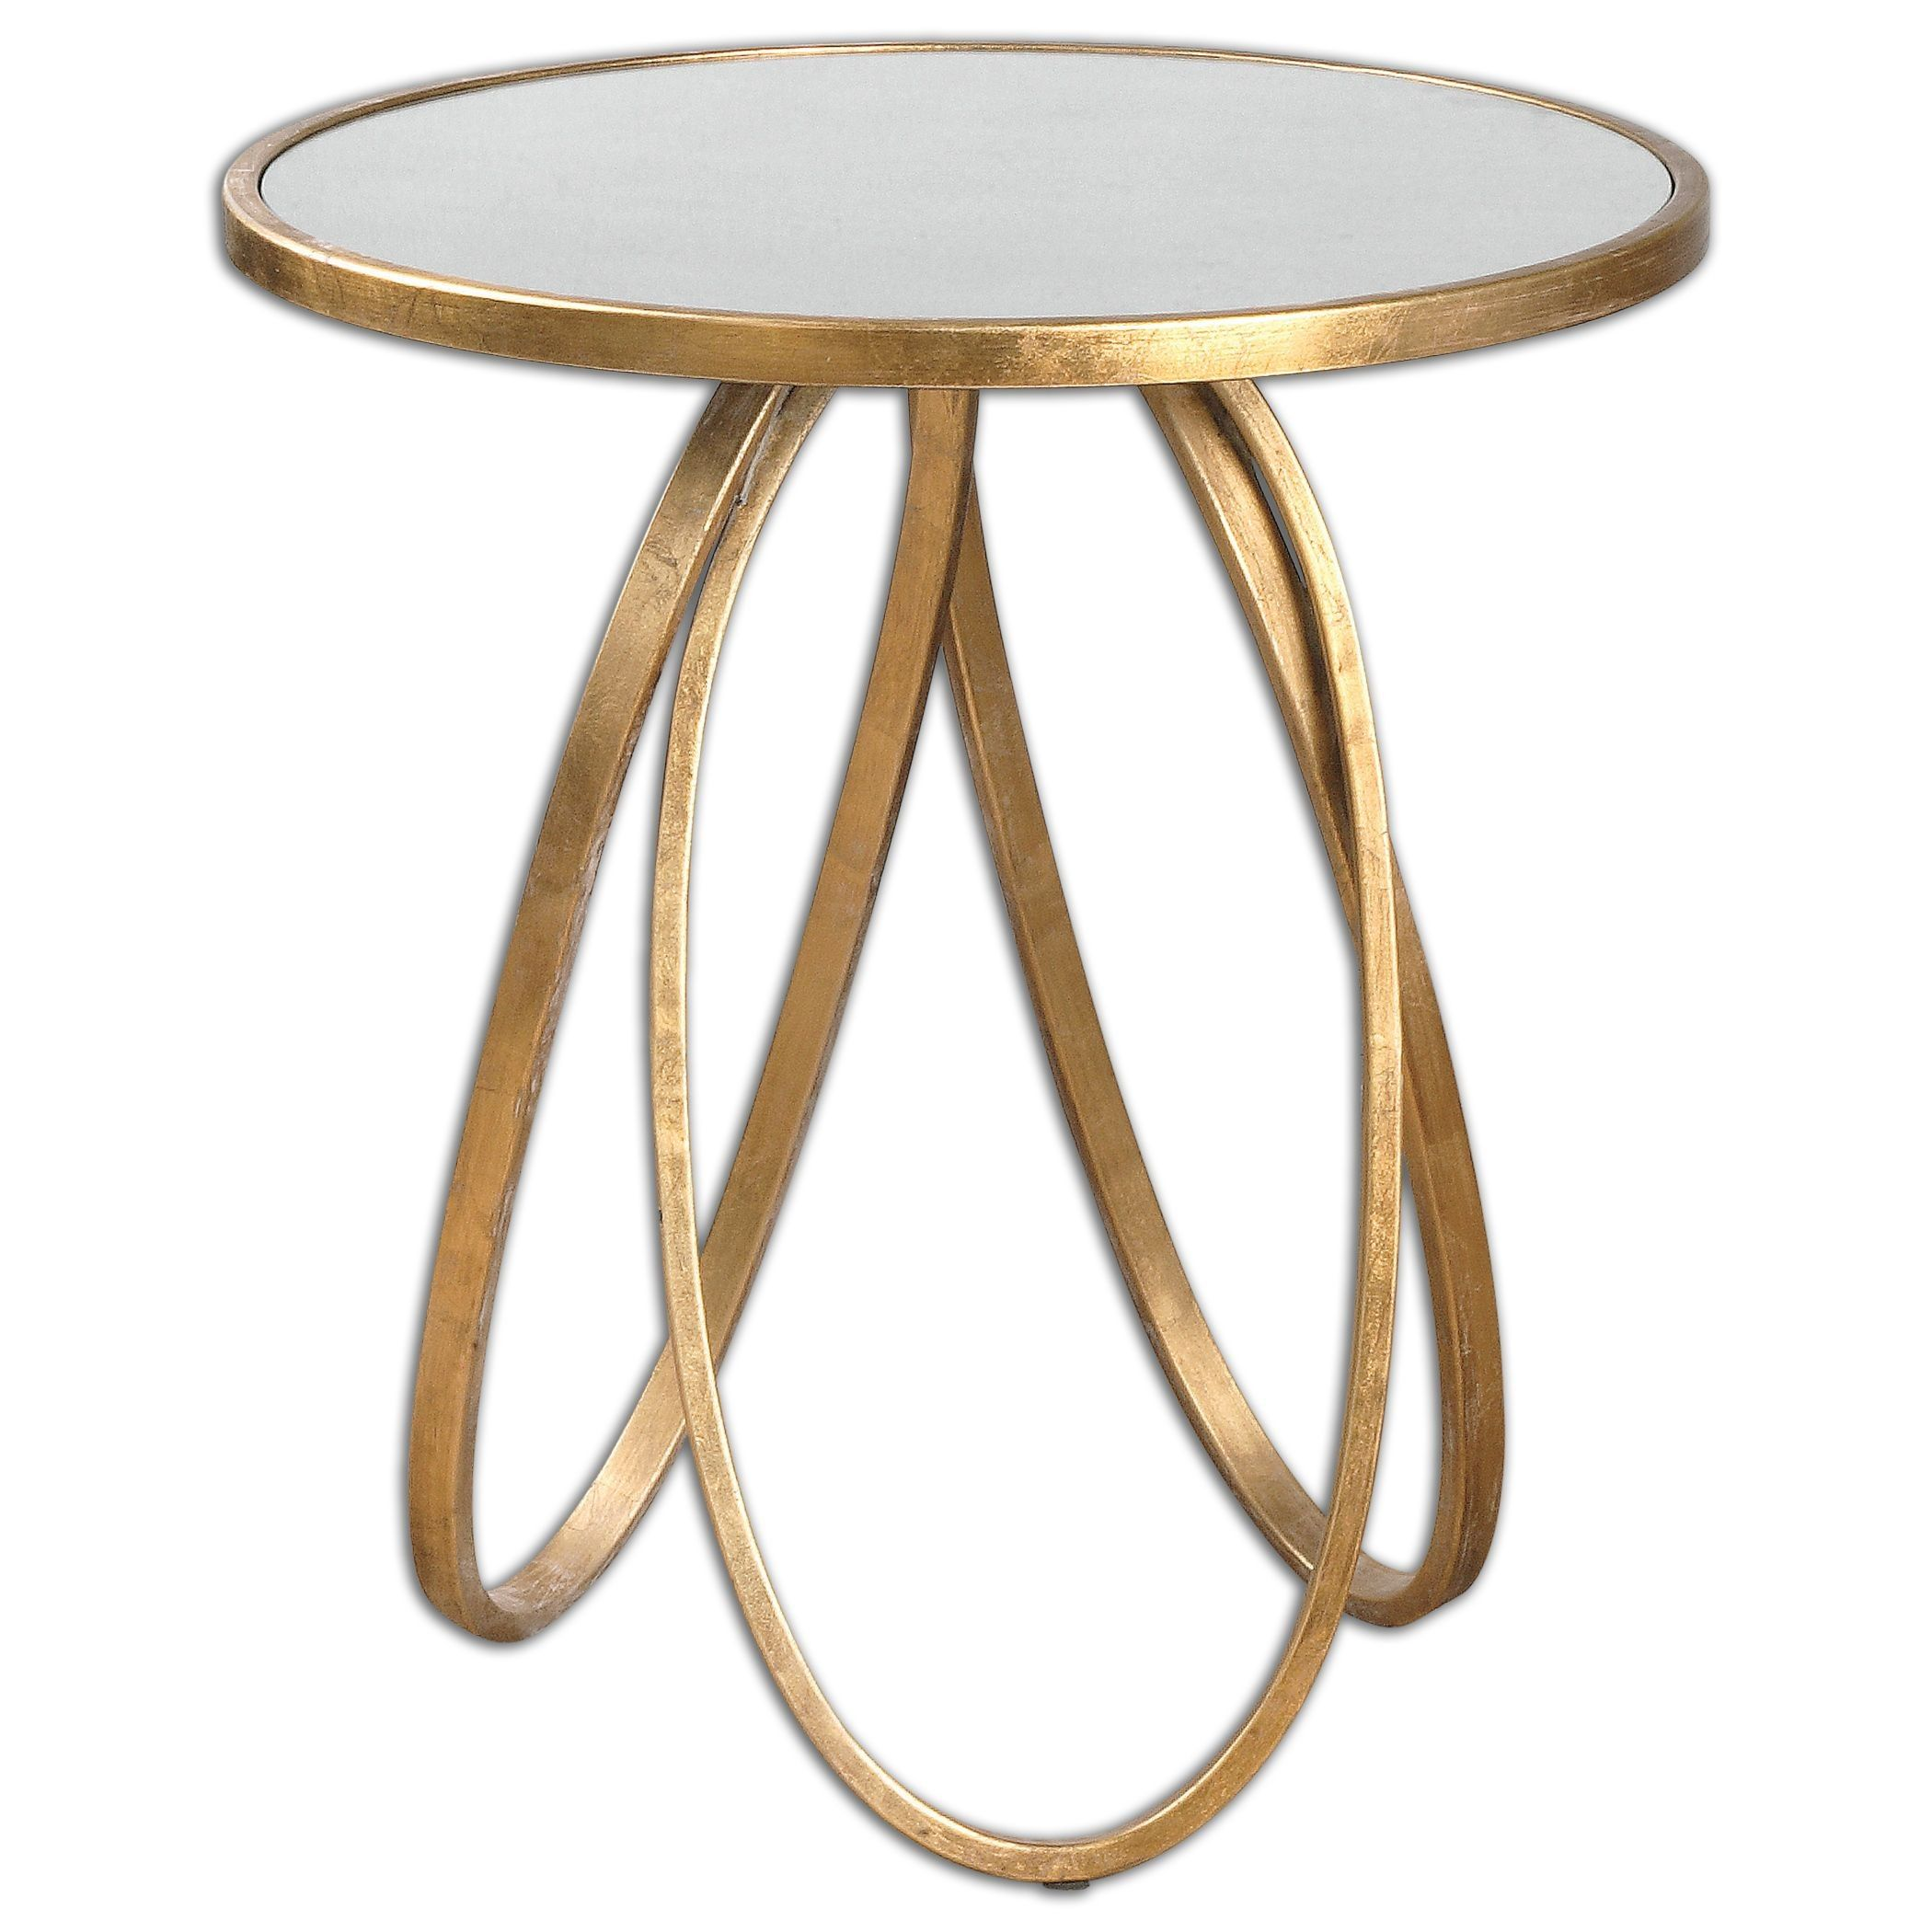 bernard accent table home decor accents black gold the curved contemporary lines our collides with rich metallic and create chic glamorous any space antique marble side cast